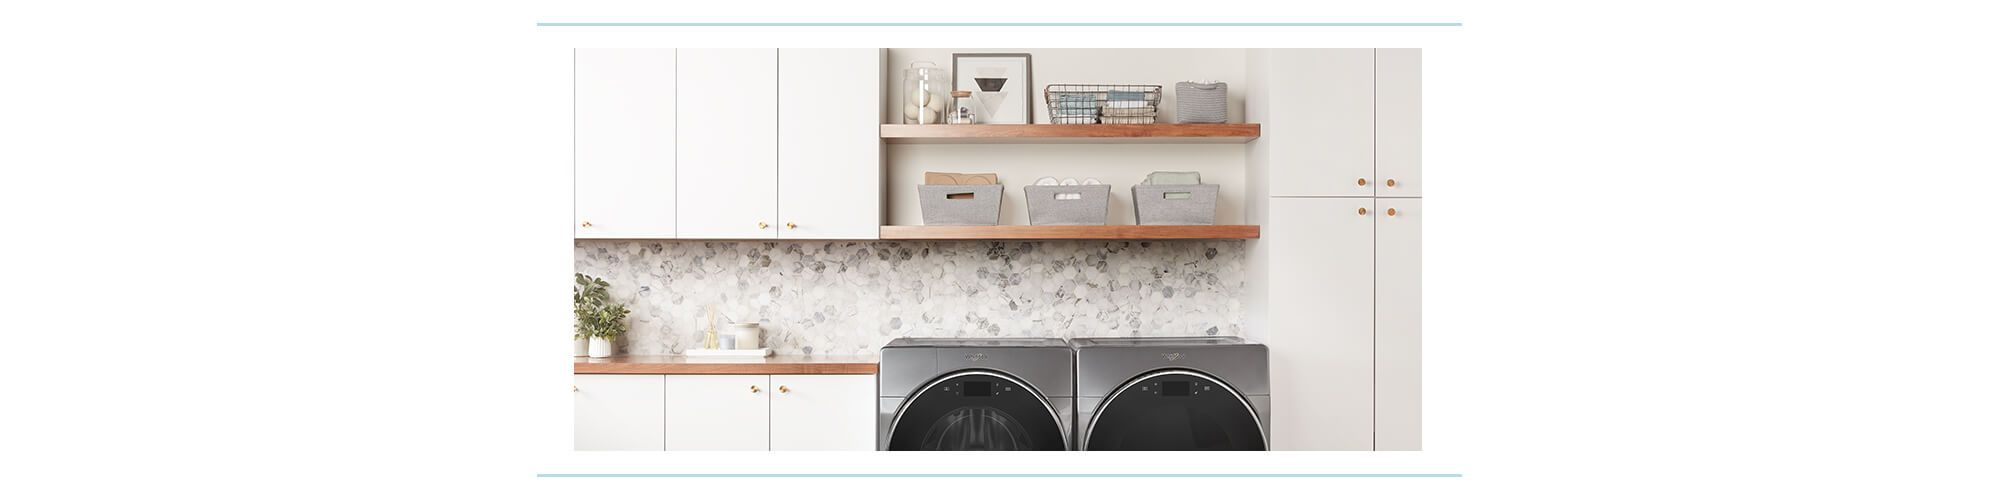 A neatly organized laundry room with open shelves, white cabinets, and Whirlpool front loading washer and dryer